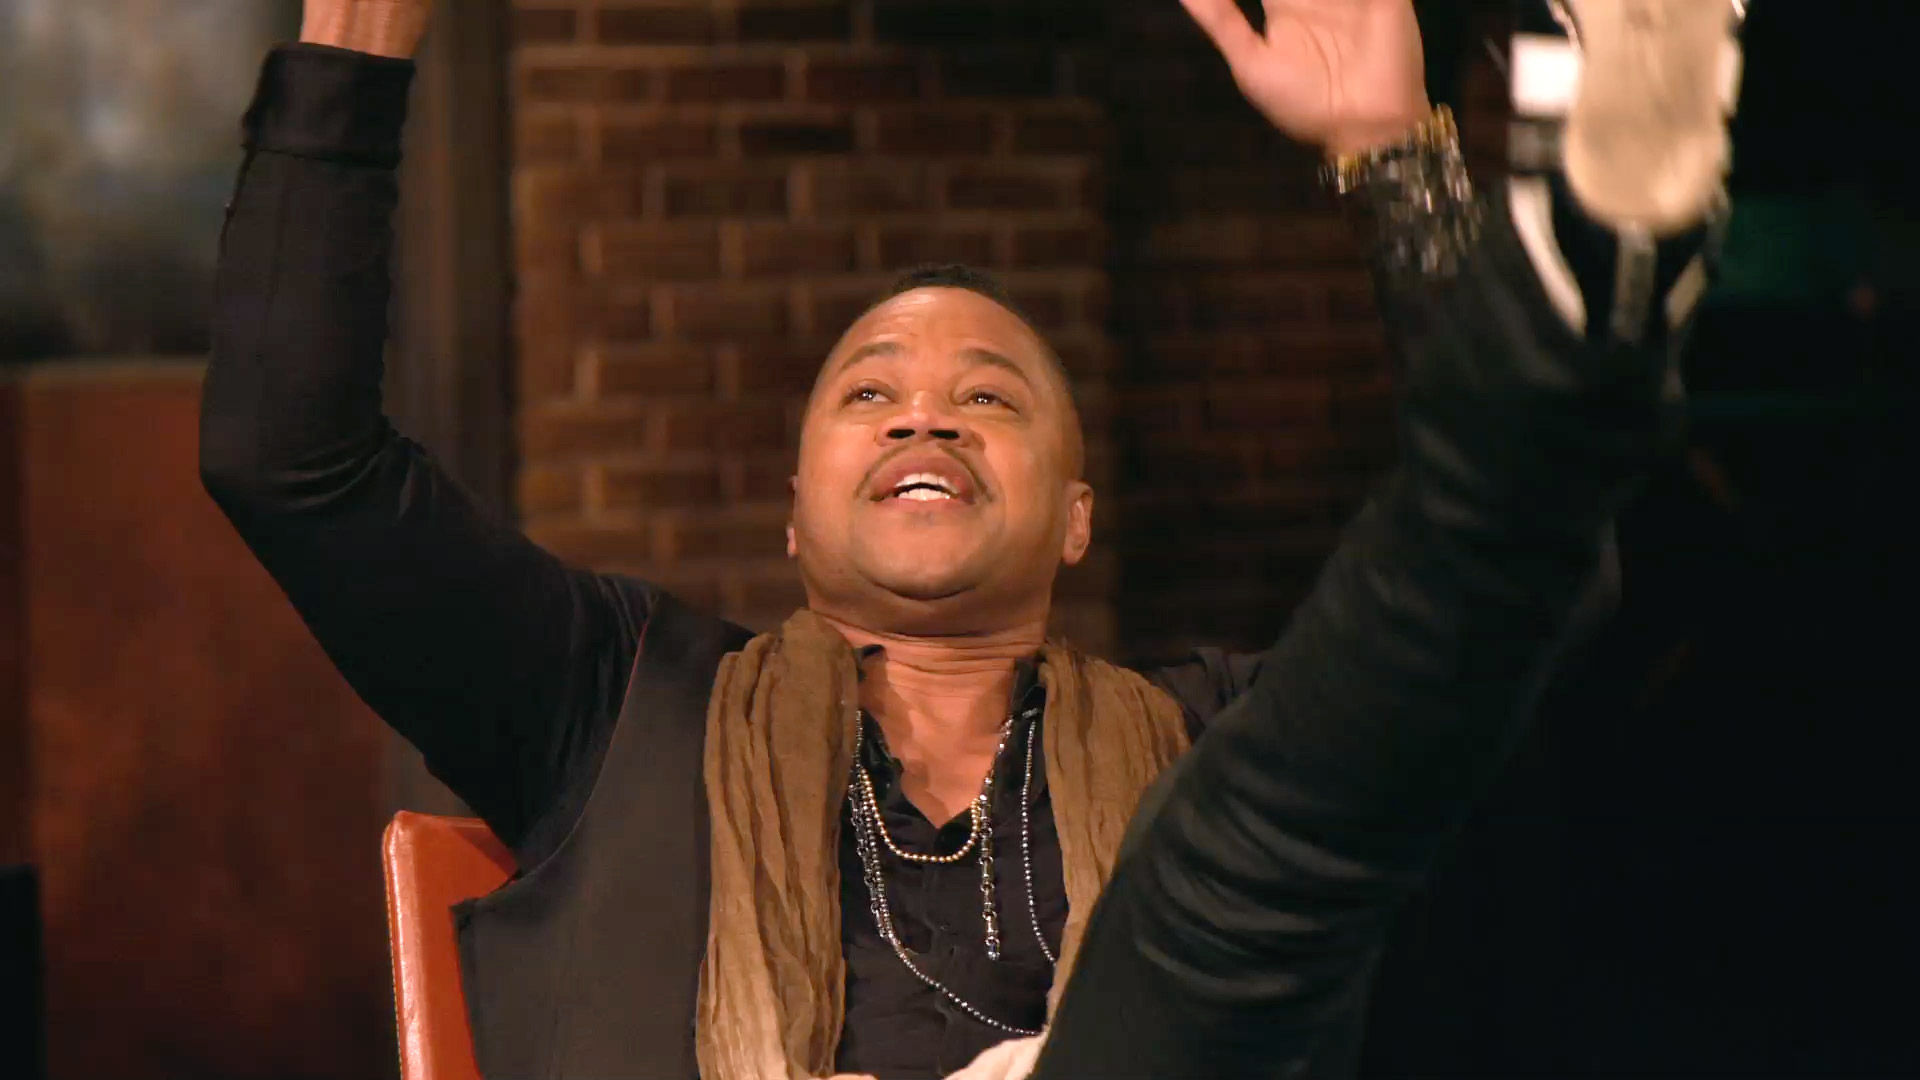 Cuba Gooding Jr. on the Time He Fell During a Performance